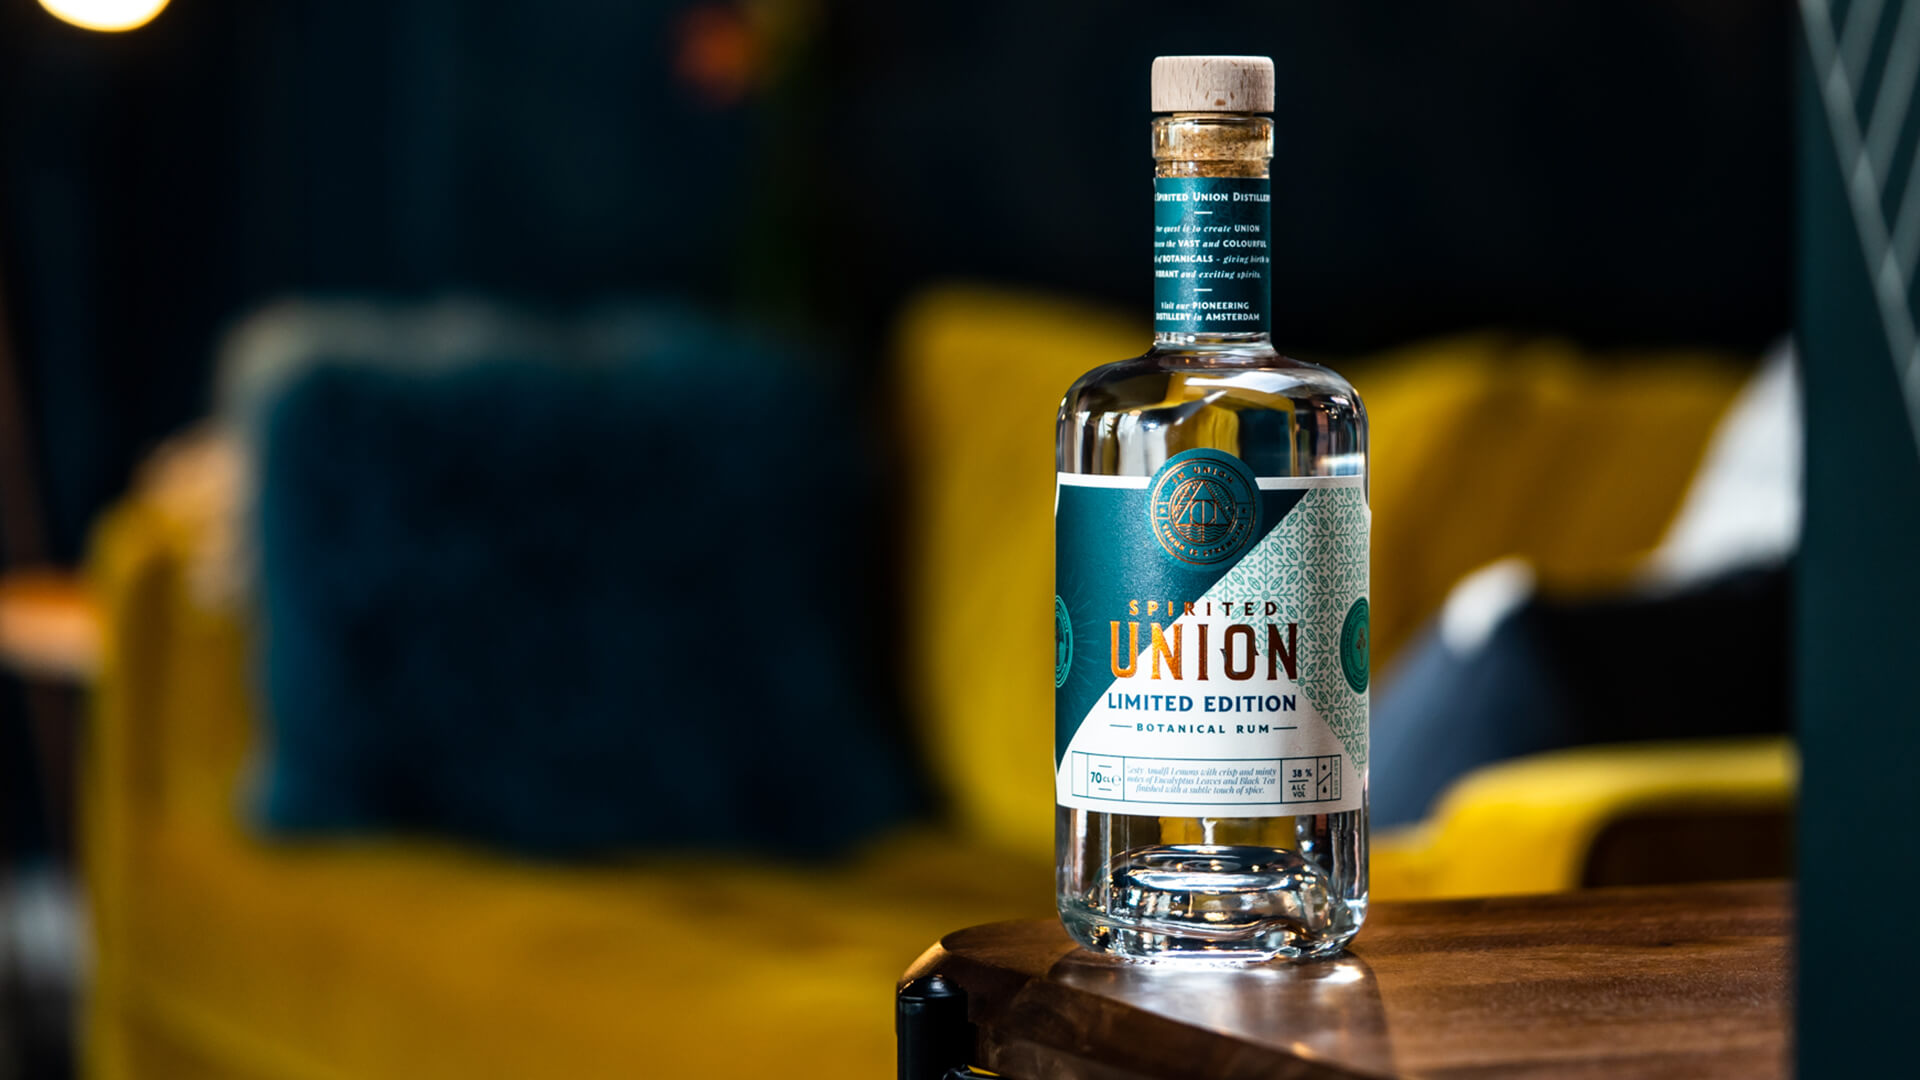 Spirited Union Distillery offer Limited Edition personalised labels designed by Mutiny Agency. Branding and label design, Packaging Design, Iconography, Logo and illustrations created by Mutiny Agency.